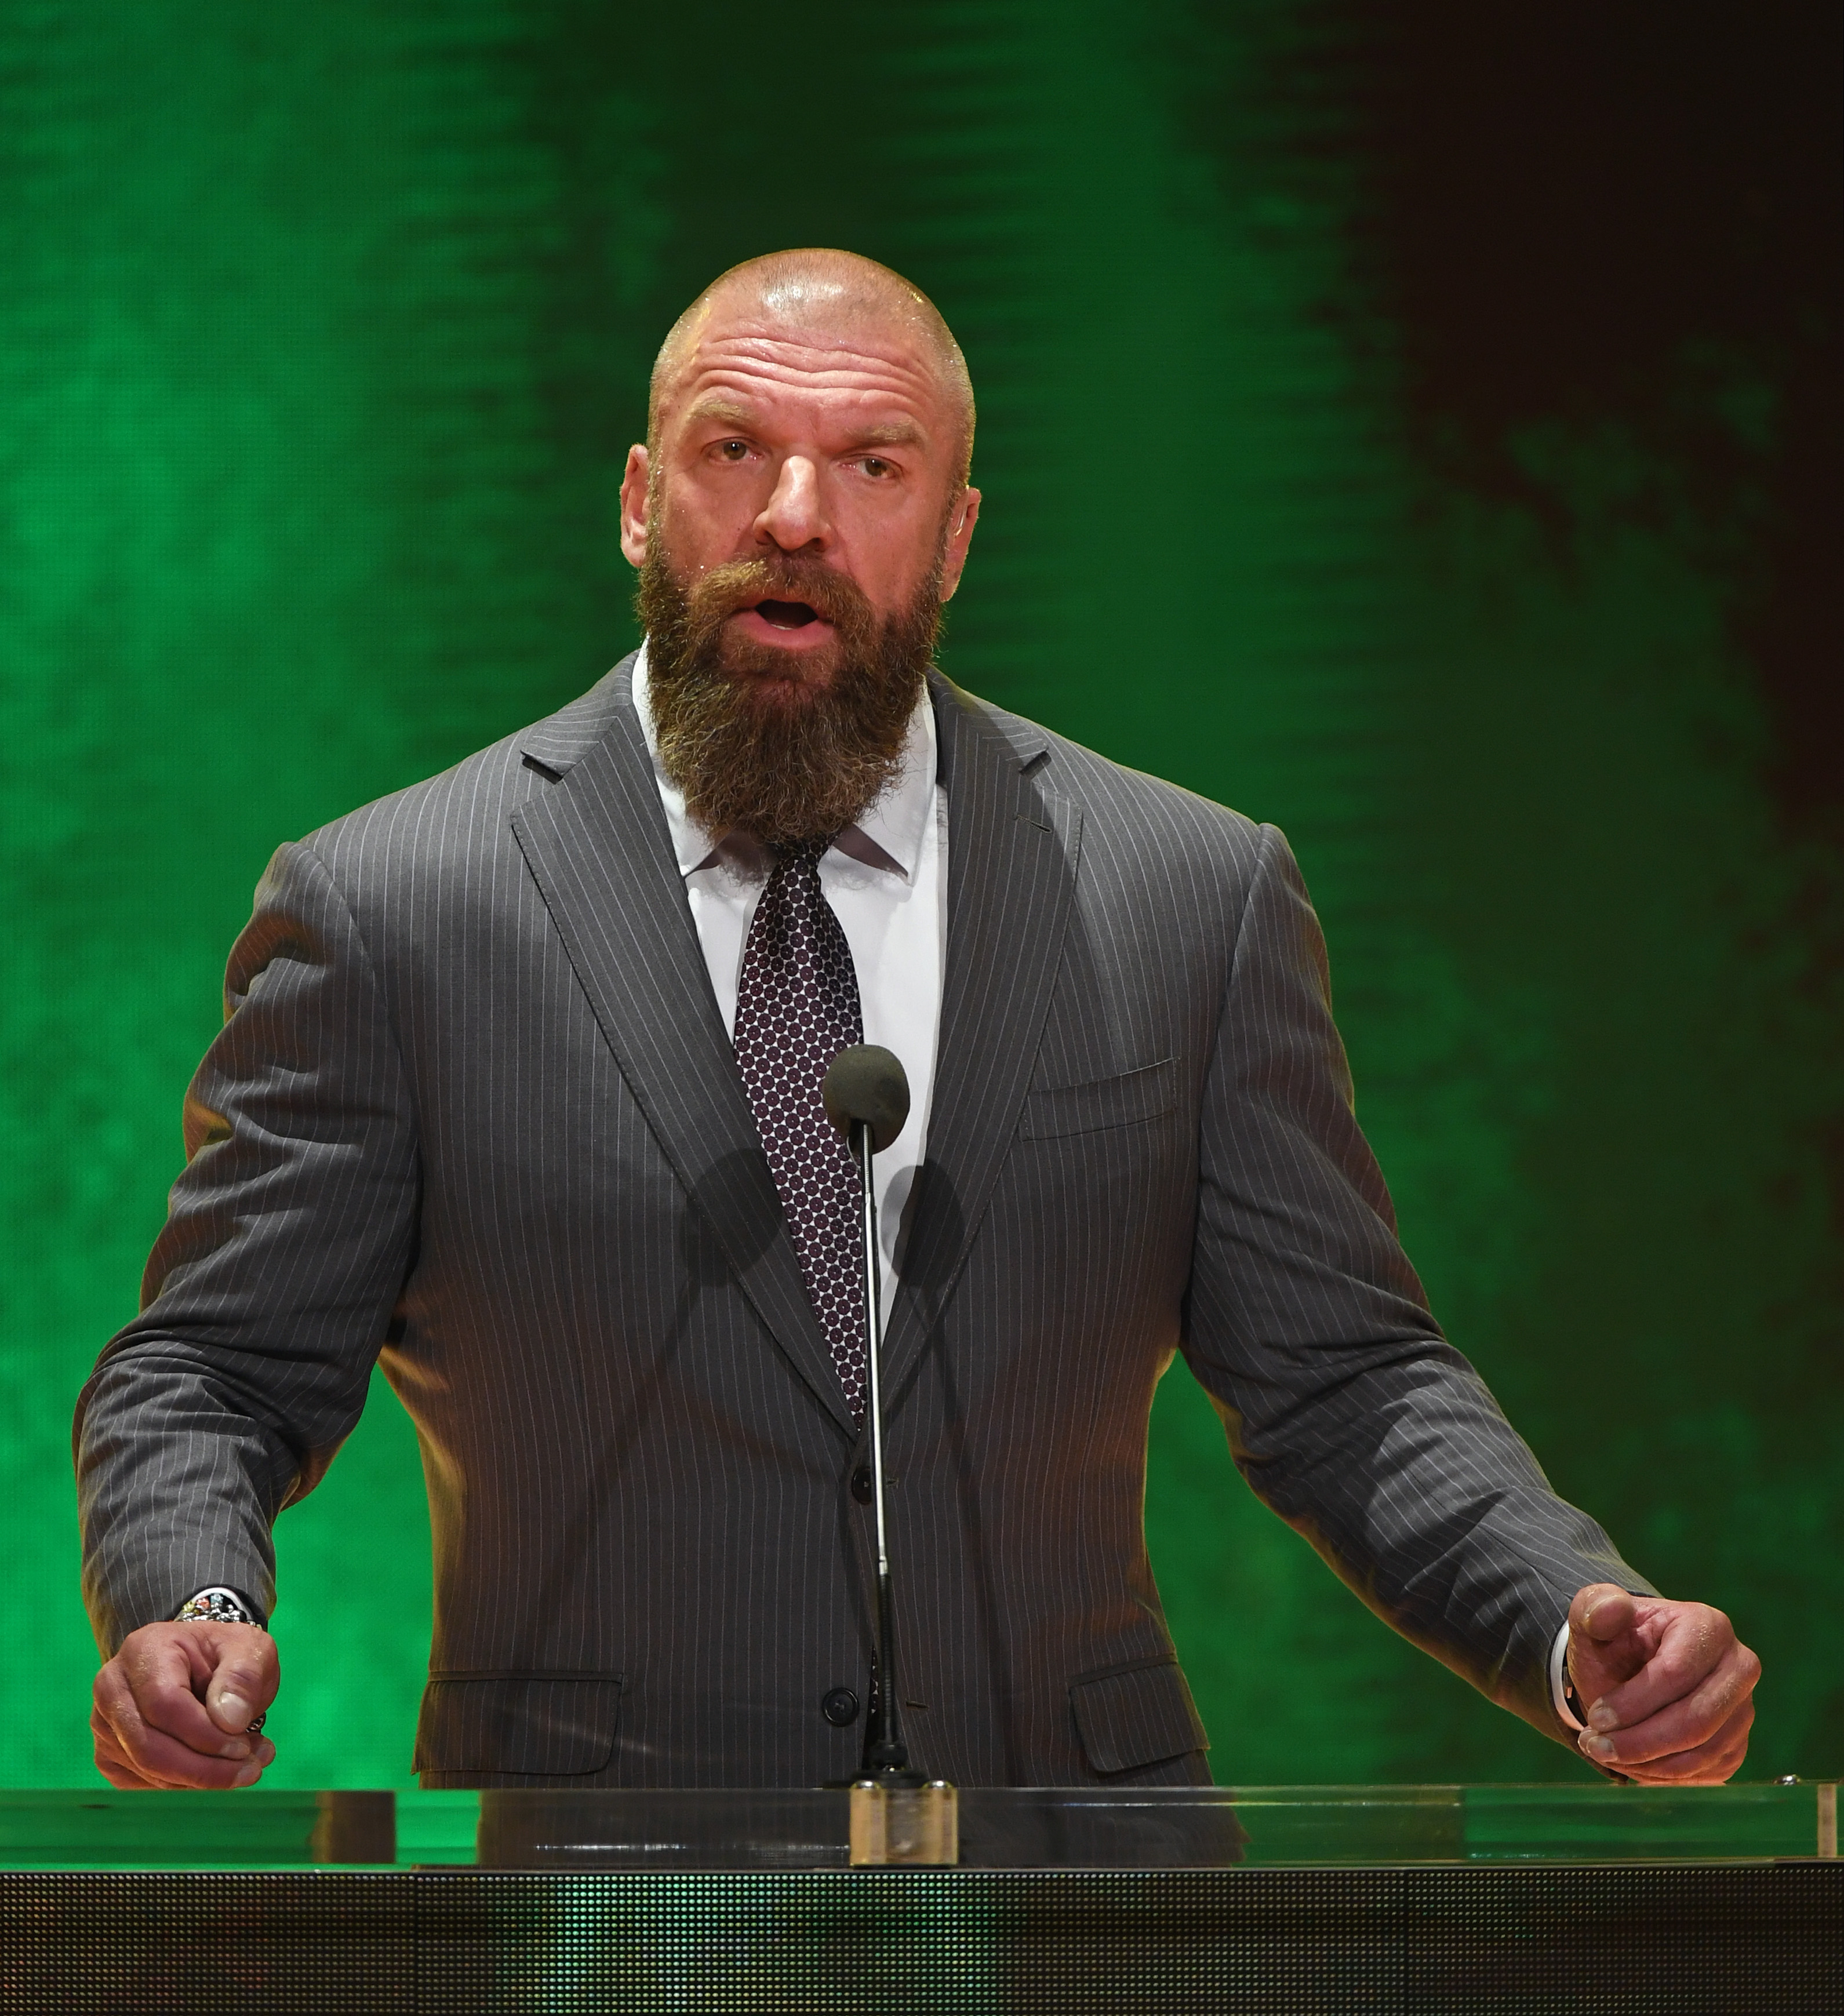 """WWE Executive Vice President of Talent, Live Events and Creative Paul """"Triple H"""" Levesque speaks at a WWE news conference at T-Mobile Arena on October 11, 2019 in Las Vegas, Nevada. It was announced that WWE wrestler Braun Strowman will face heavyweight boxer Tyson Fury and WWE champion Brock Lesnar will take on former UFC heavyweight champion Cain Velasquez at the WWE's Crown Jewel event at Fahd International Stadium in Riyadh, Saudi Arabia on October 31."""